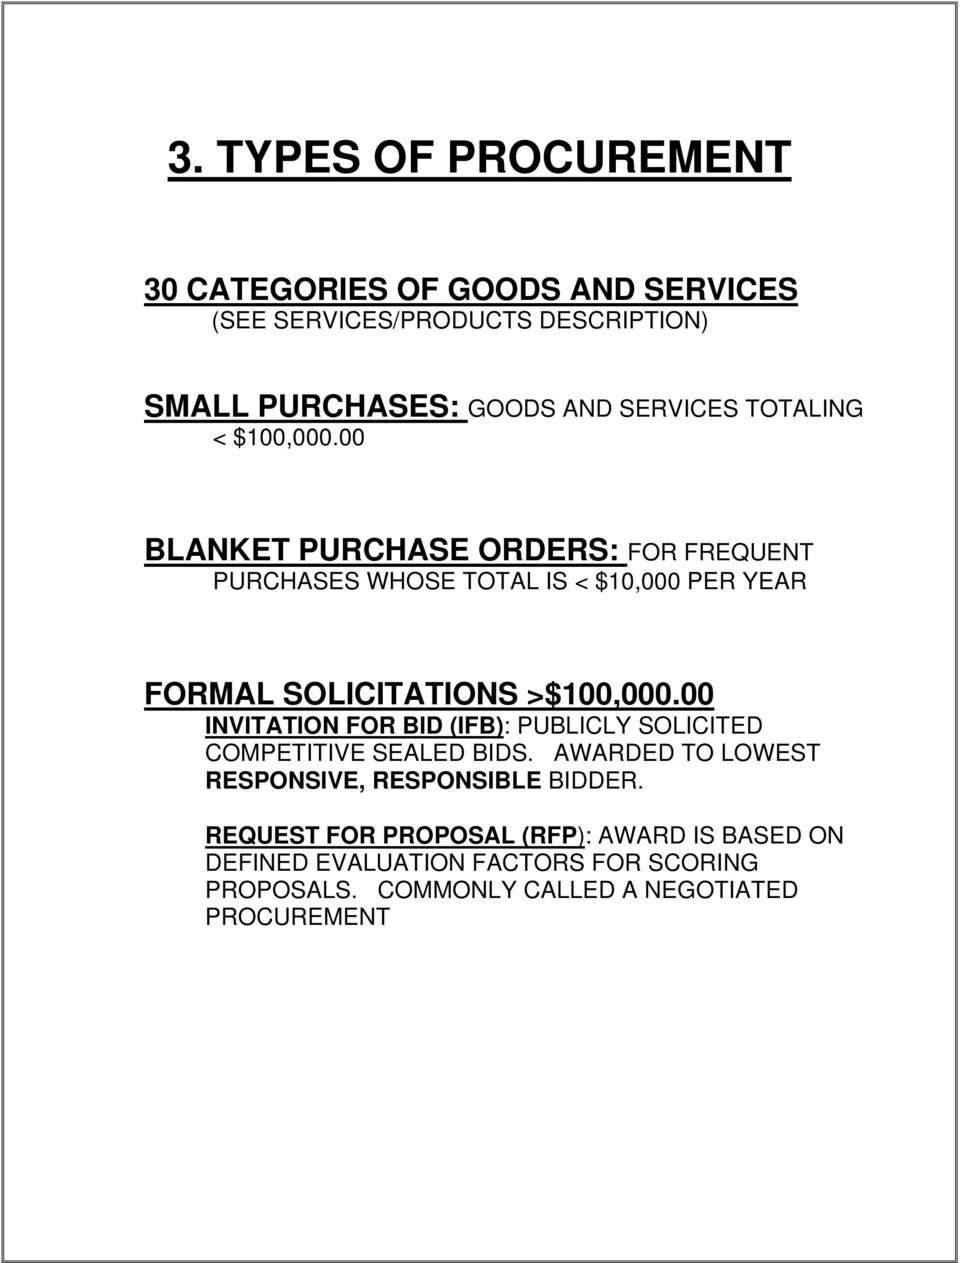 00 BLANKET PURCHASE ORDERS: FOR FREQUENT PURCHASES WHOSE TOTAL IS < $10,000 PER YEAR FORMAL SOLICITATIONS >$100,000.